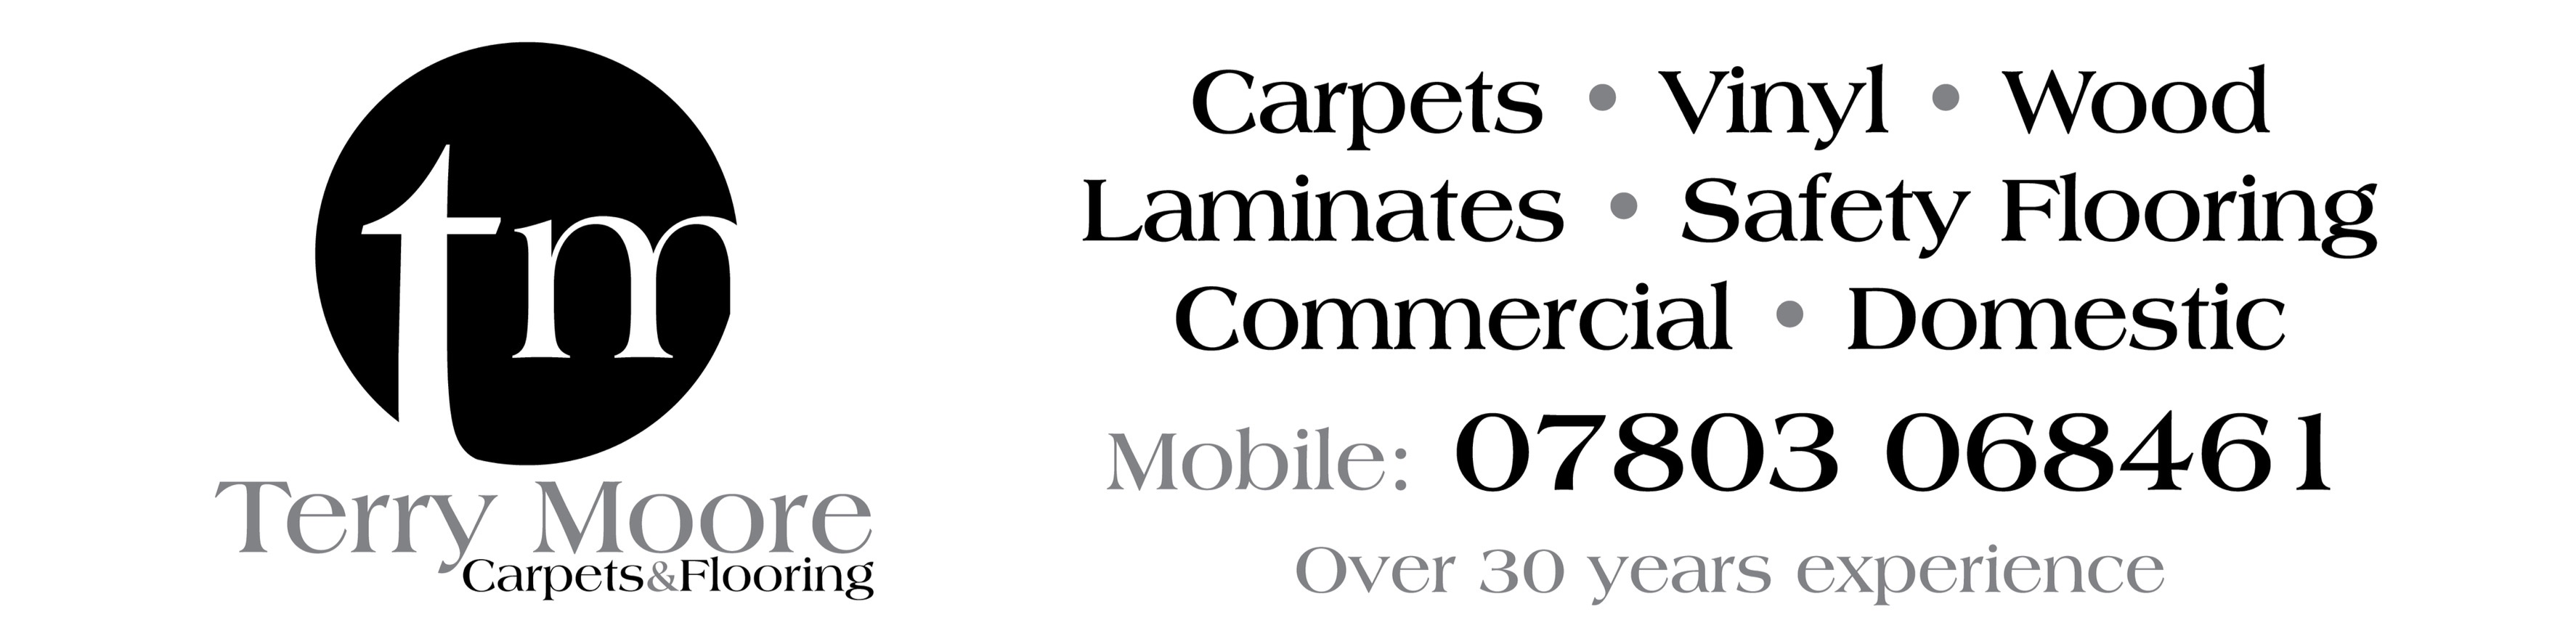 Terry Moore Carpets & Floring